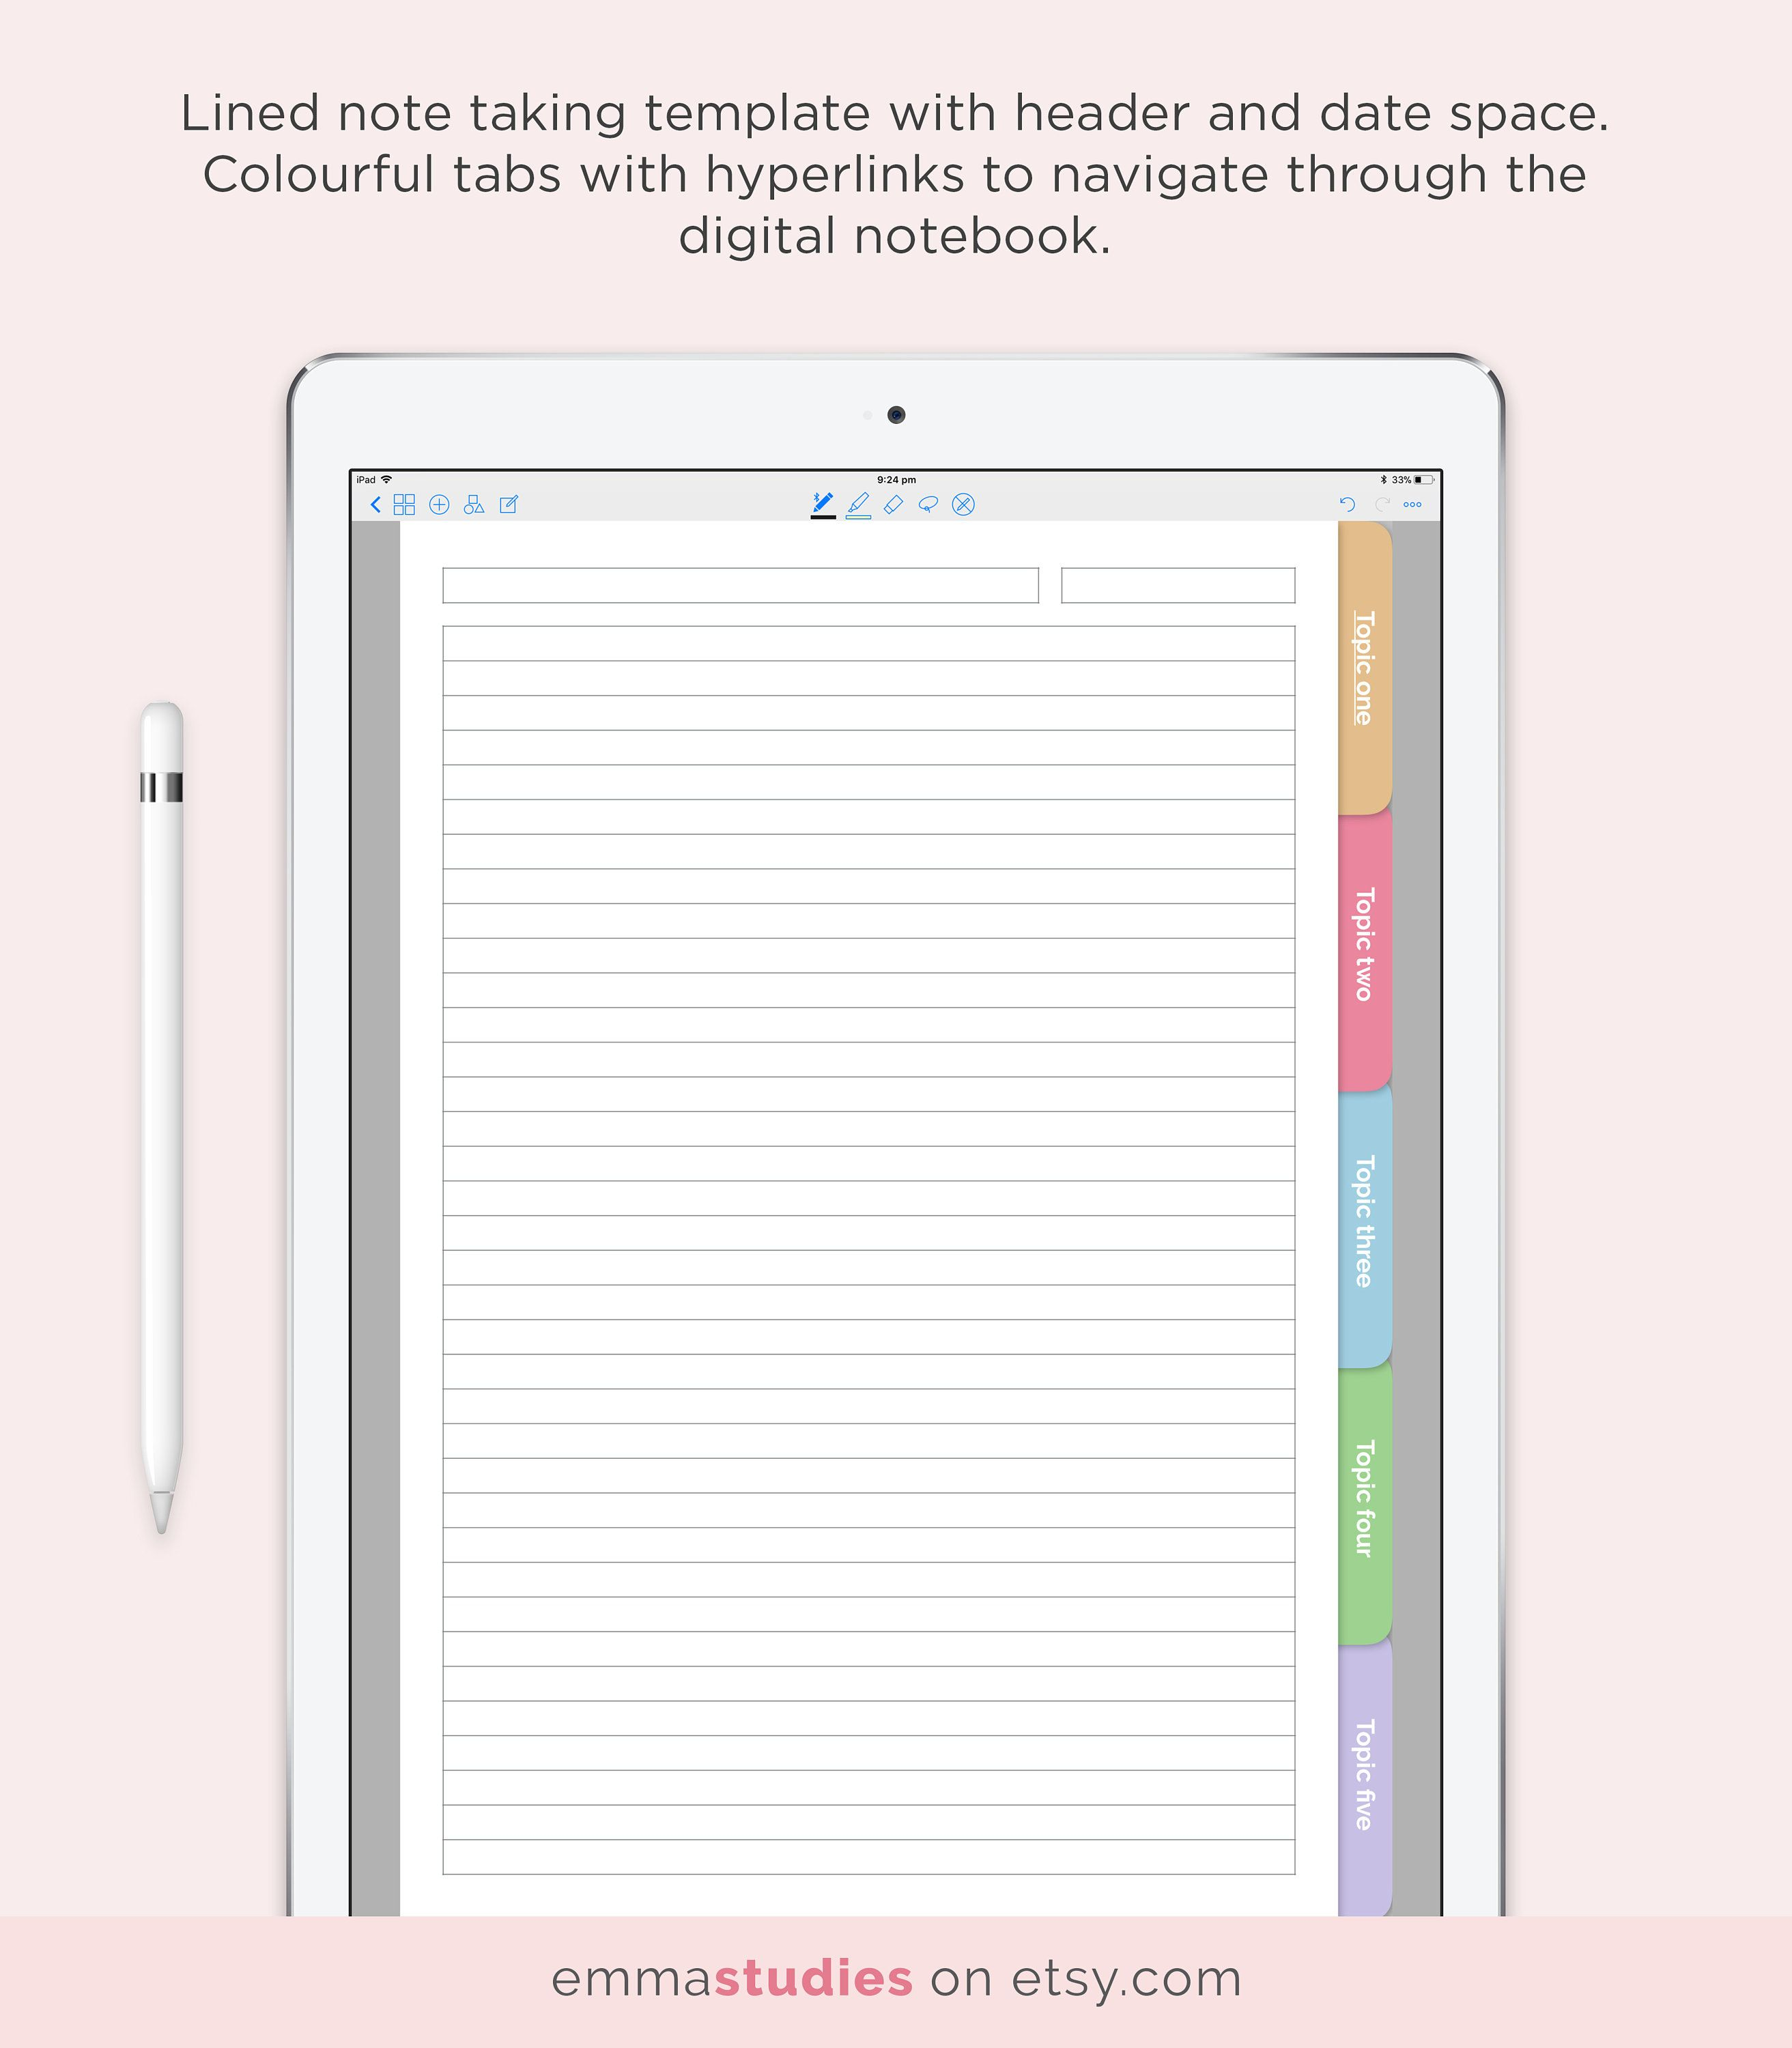 Goodnotes 5 Subject Student Notebook Template Digital Lined Ruled Customisable Notebook Ipad College School Instant Download Notebook Templates Customizable Notebooks Student Notebooks